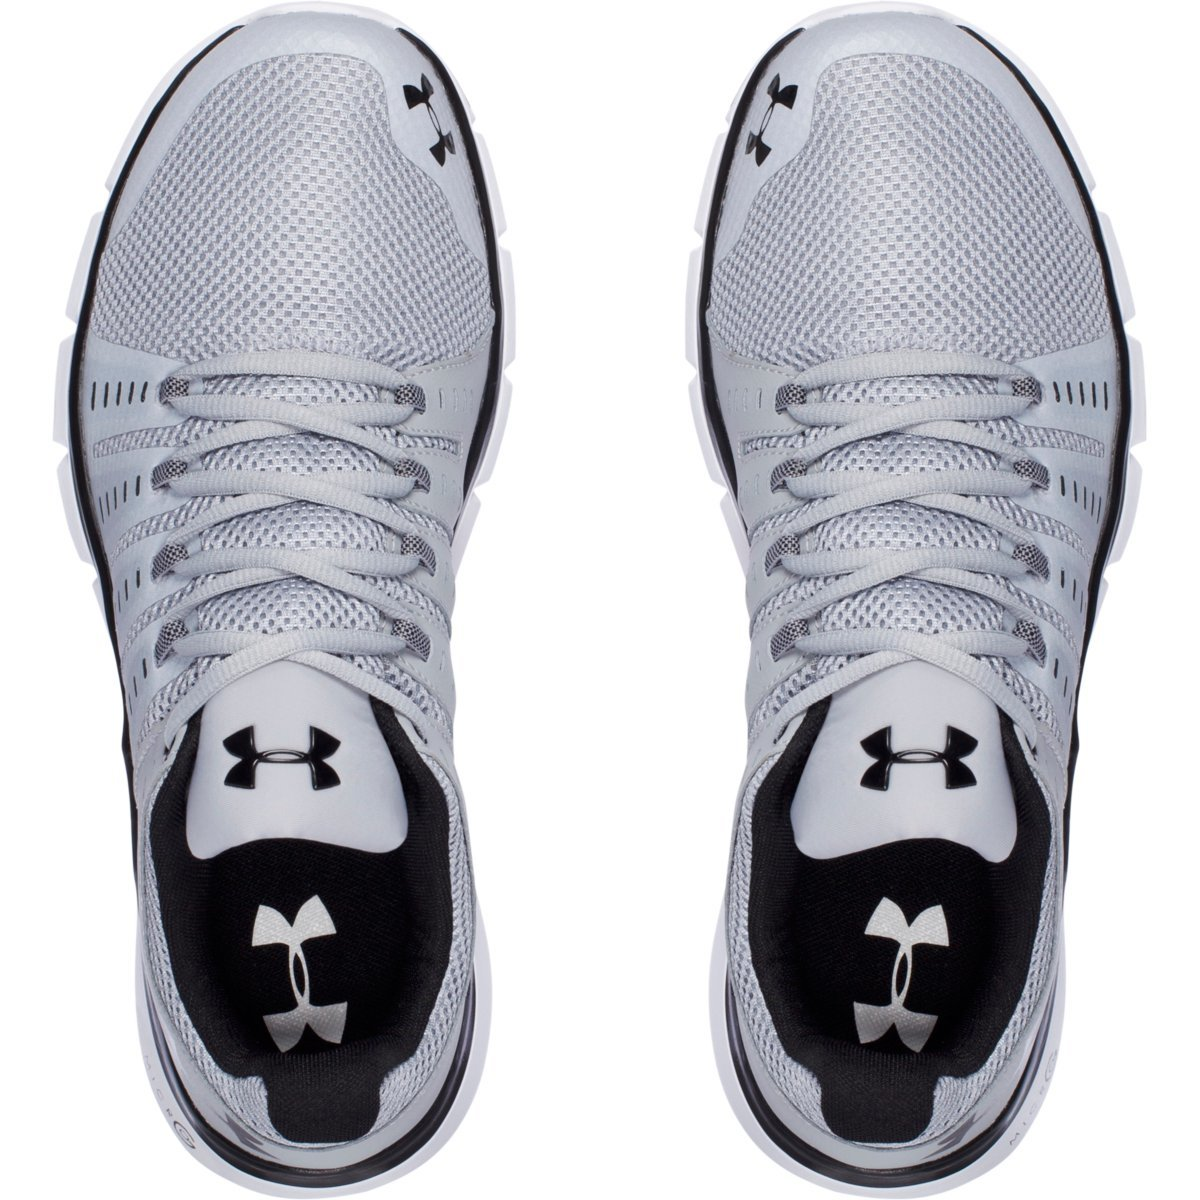 new product 3c970 c6b99 UNDER ARMOUR Men's Micro G Limitless 2 Training Shoes ...